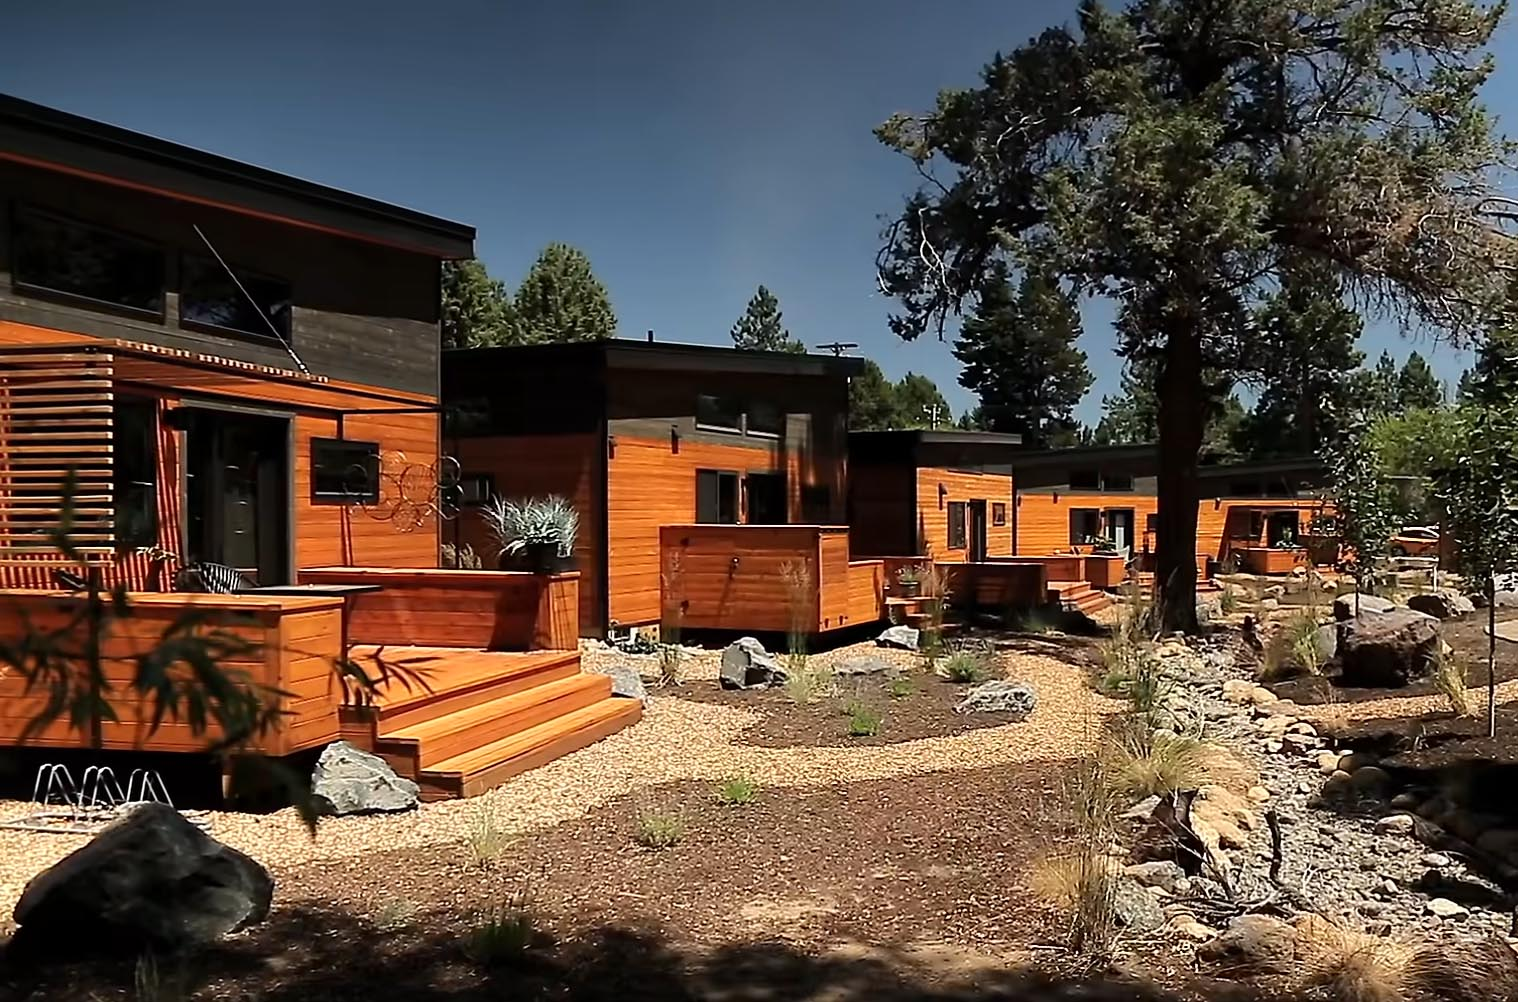 A modern tiny house community with homes and paths connecting them to the landscaping.